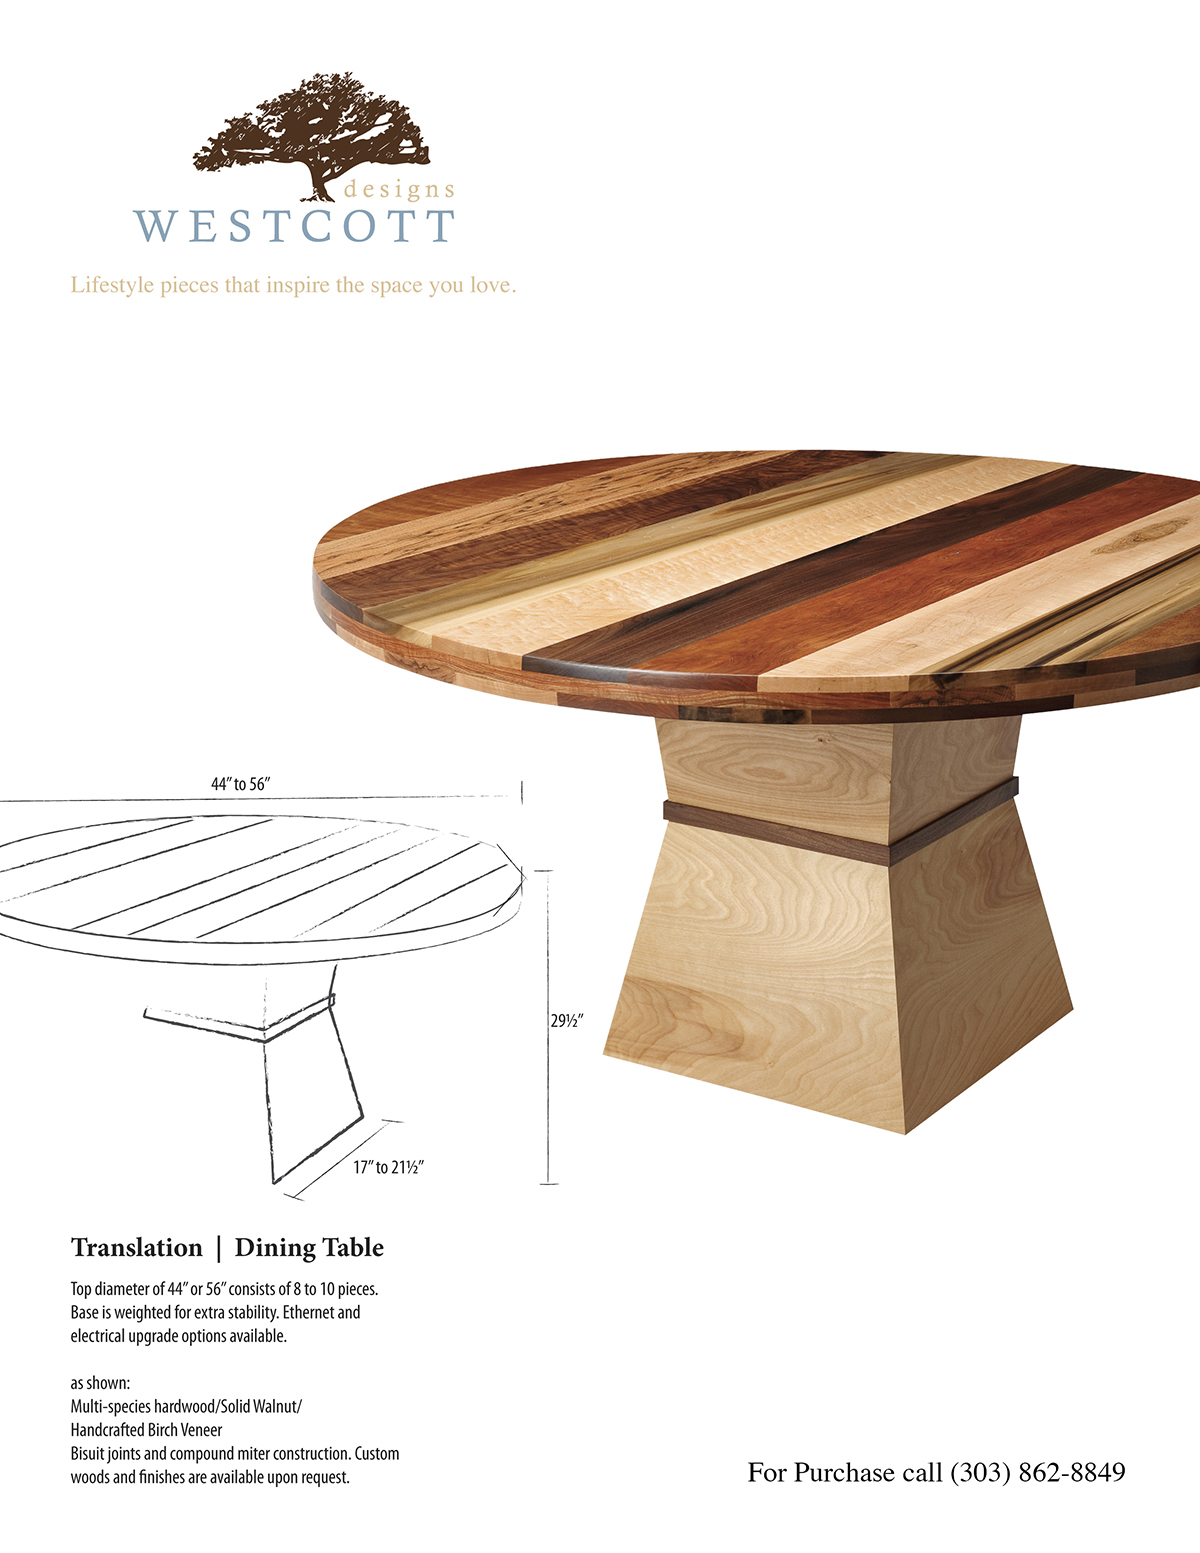 Translation_Dining_Table_web